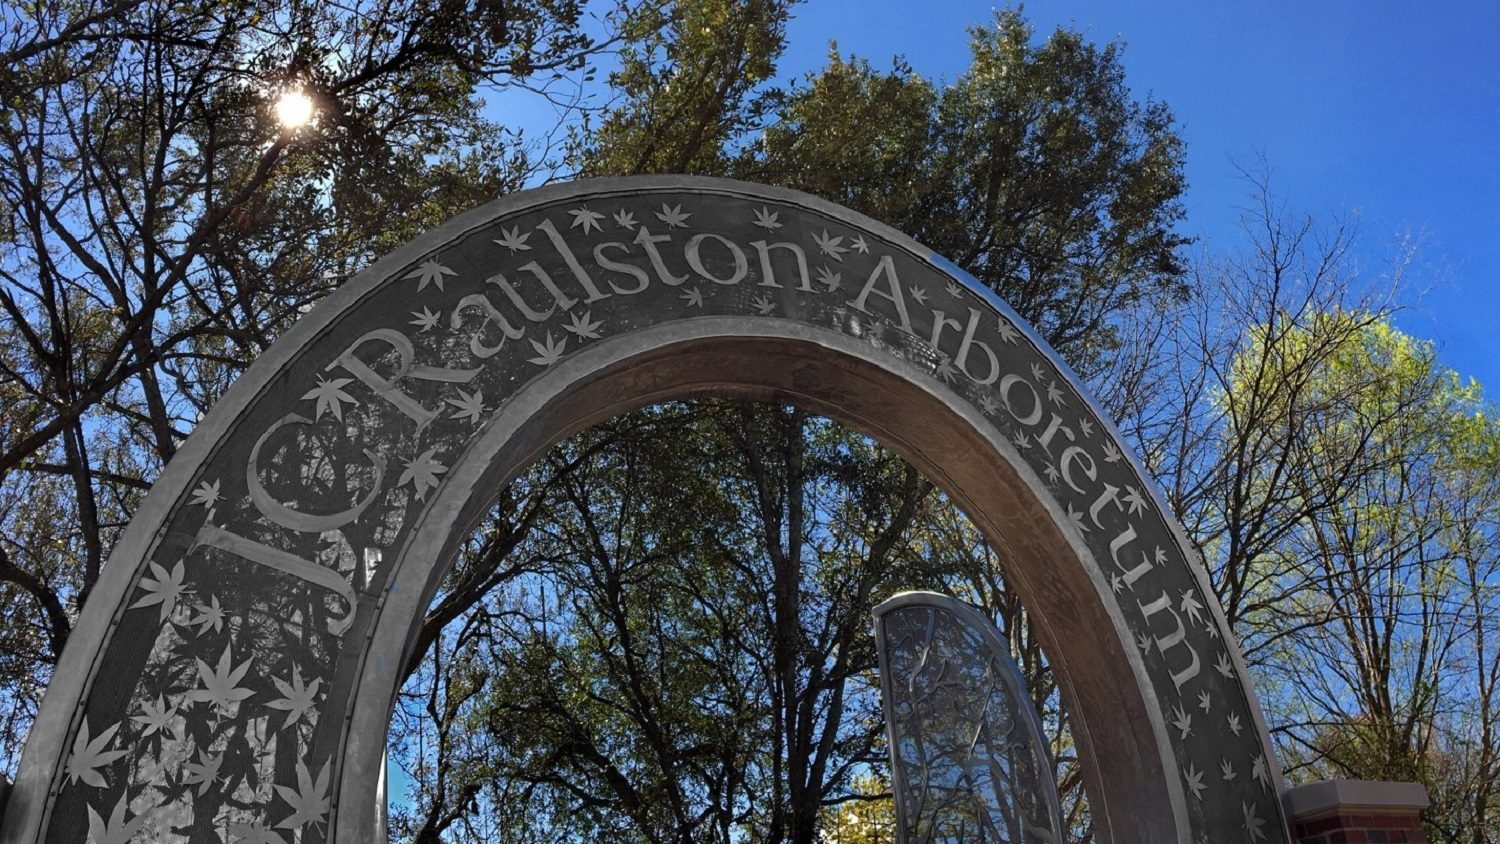 The arch of the JC Raulston Arboretum